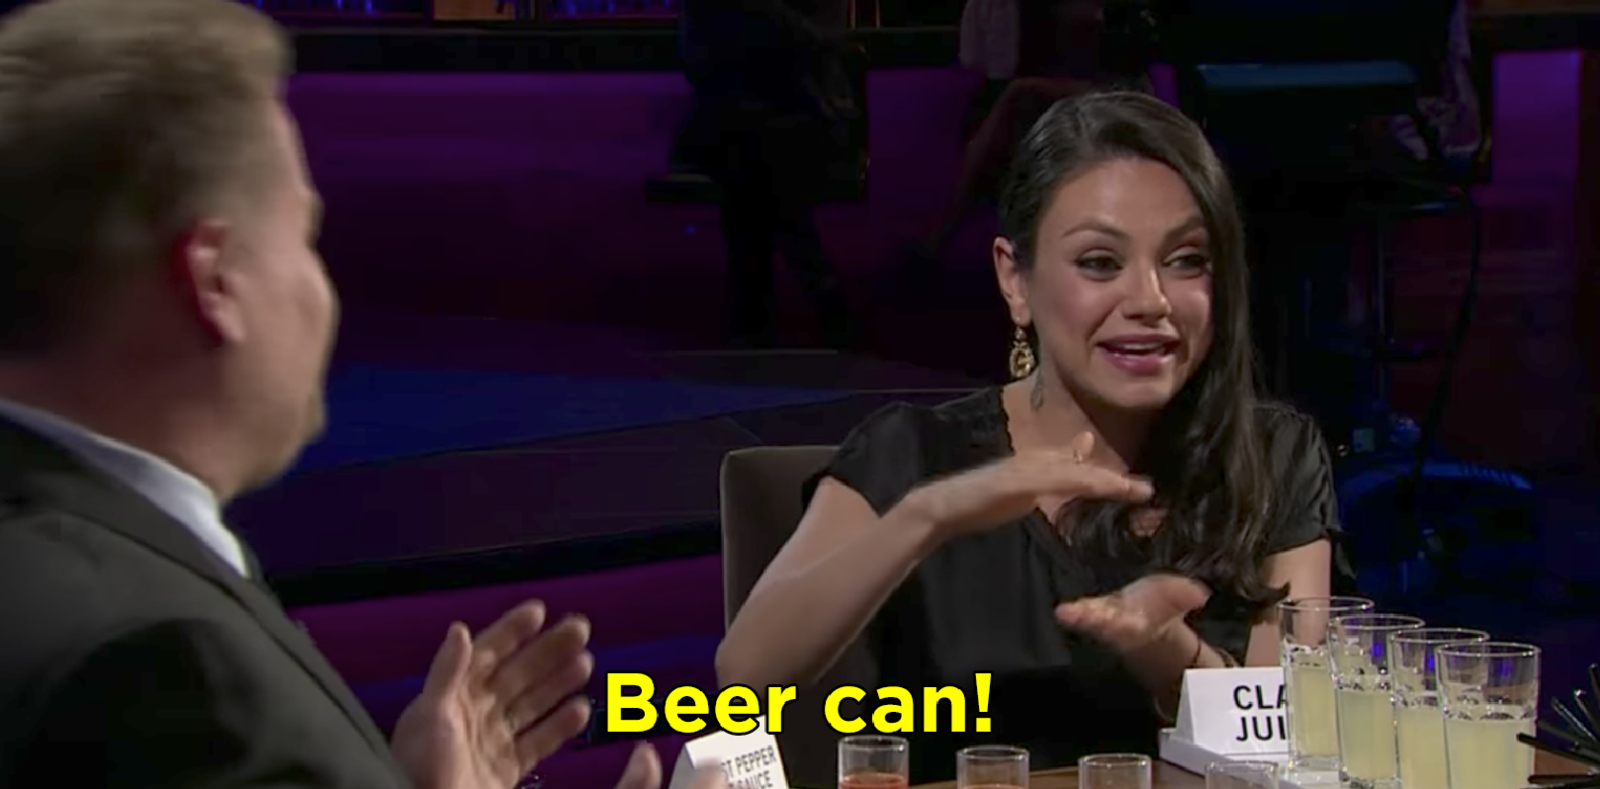 She said beer can